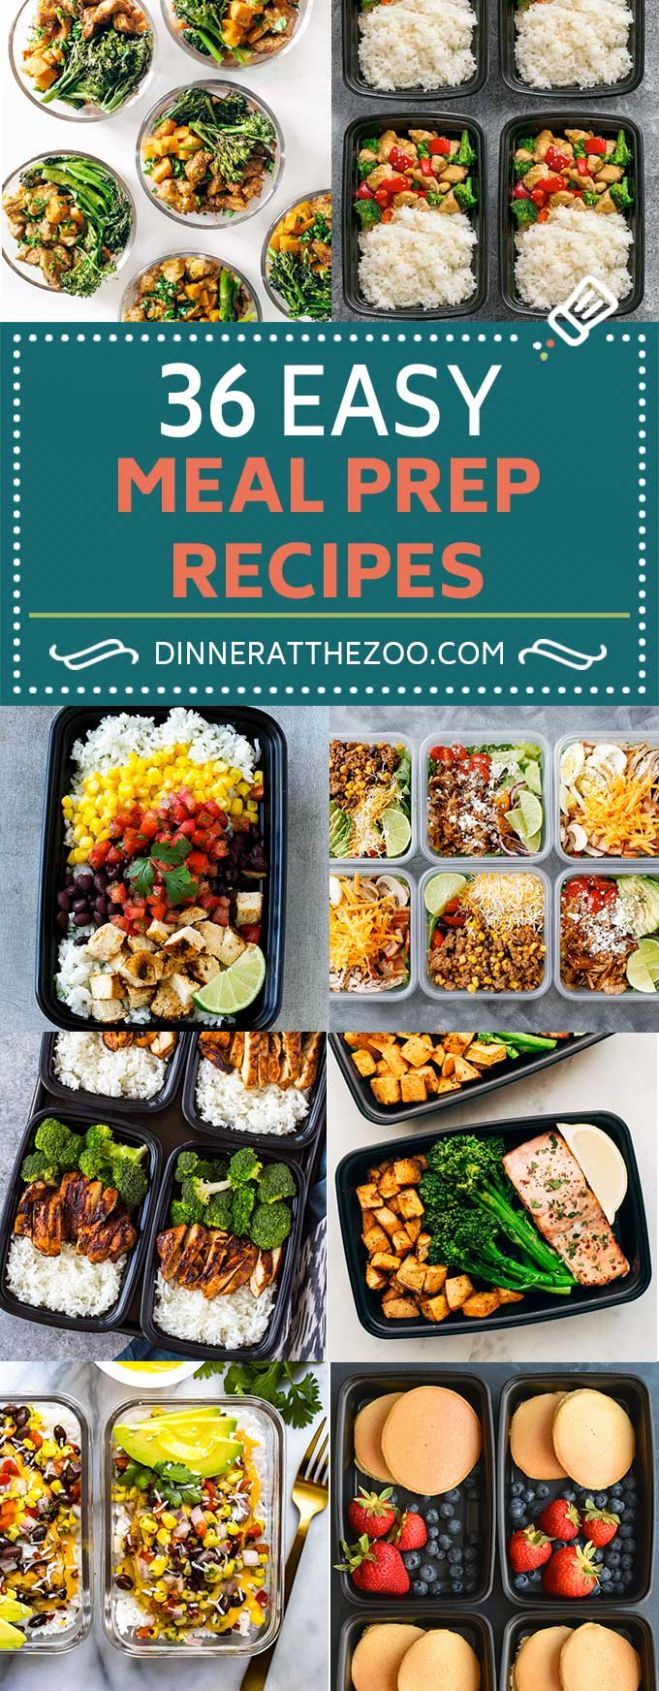 12 Easy Meal Prep Recipes - Dinner at the Zoo - Simple Recipes Meal Prep